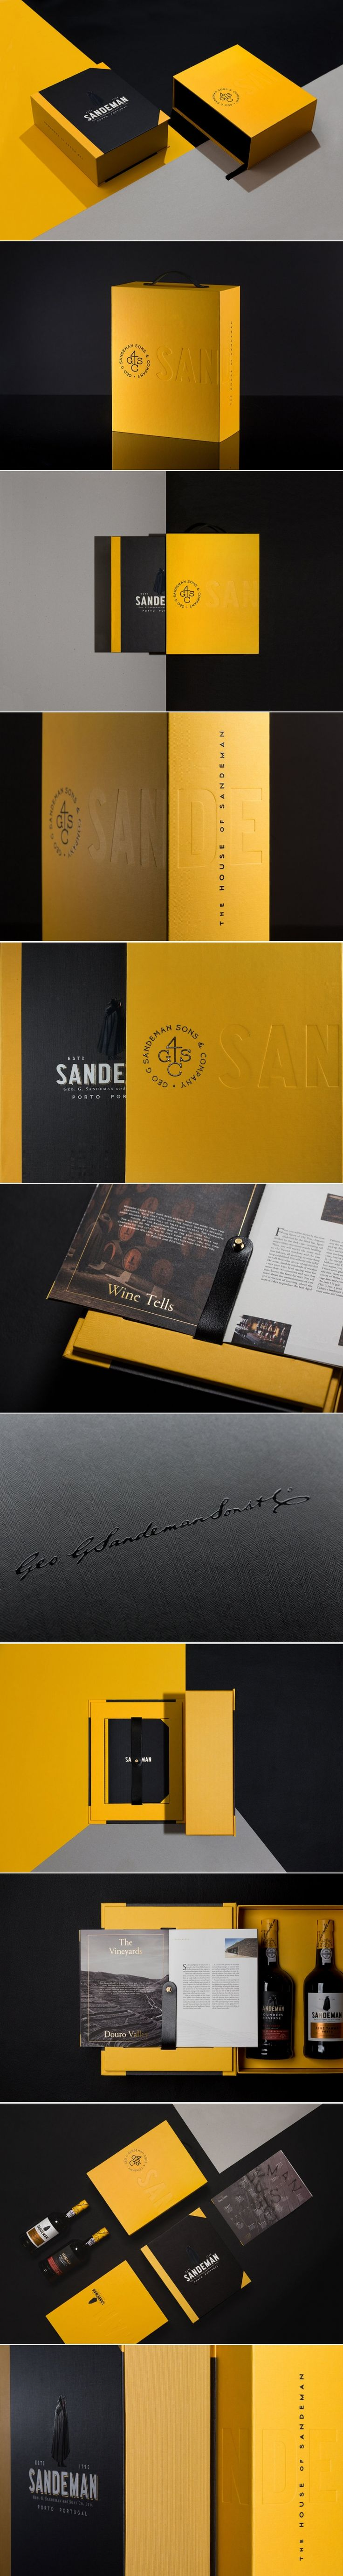 Check Out This Elegantly Designed Trade Book For Sandeman — The Dieline | Packaging & Branding Design & Innovation News